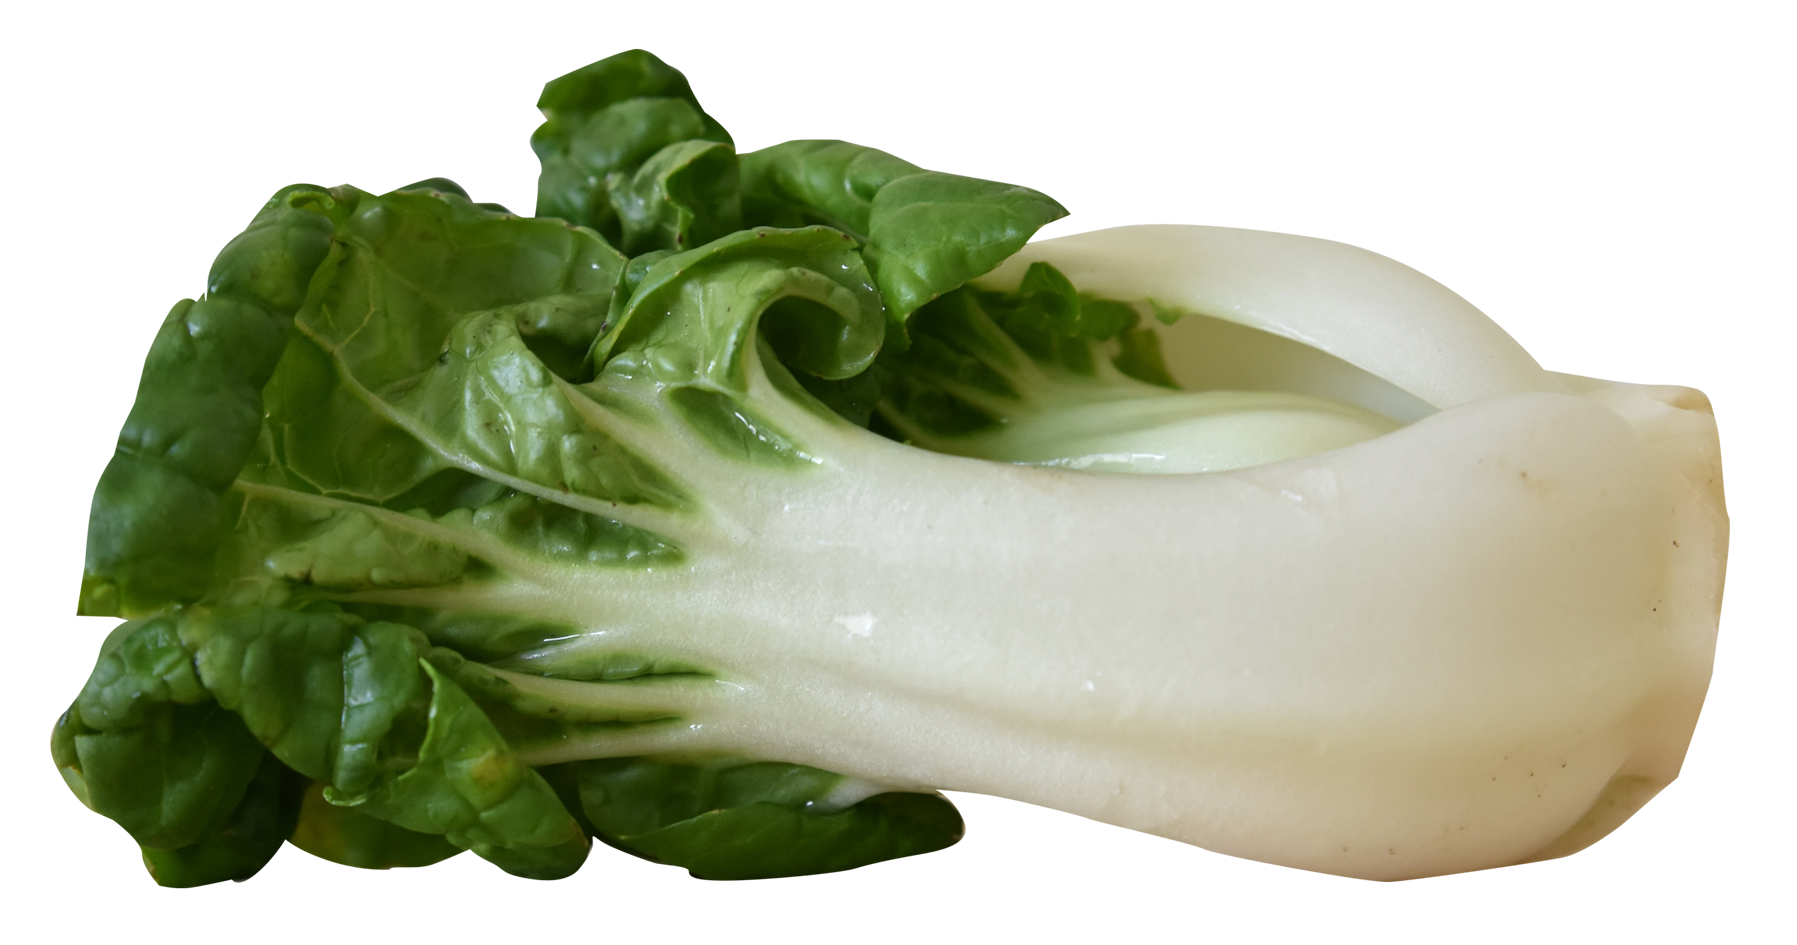 Png image purepng free. Vegetables clipart bok choy